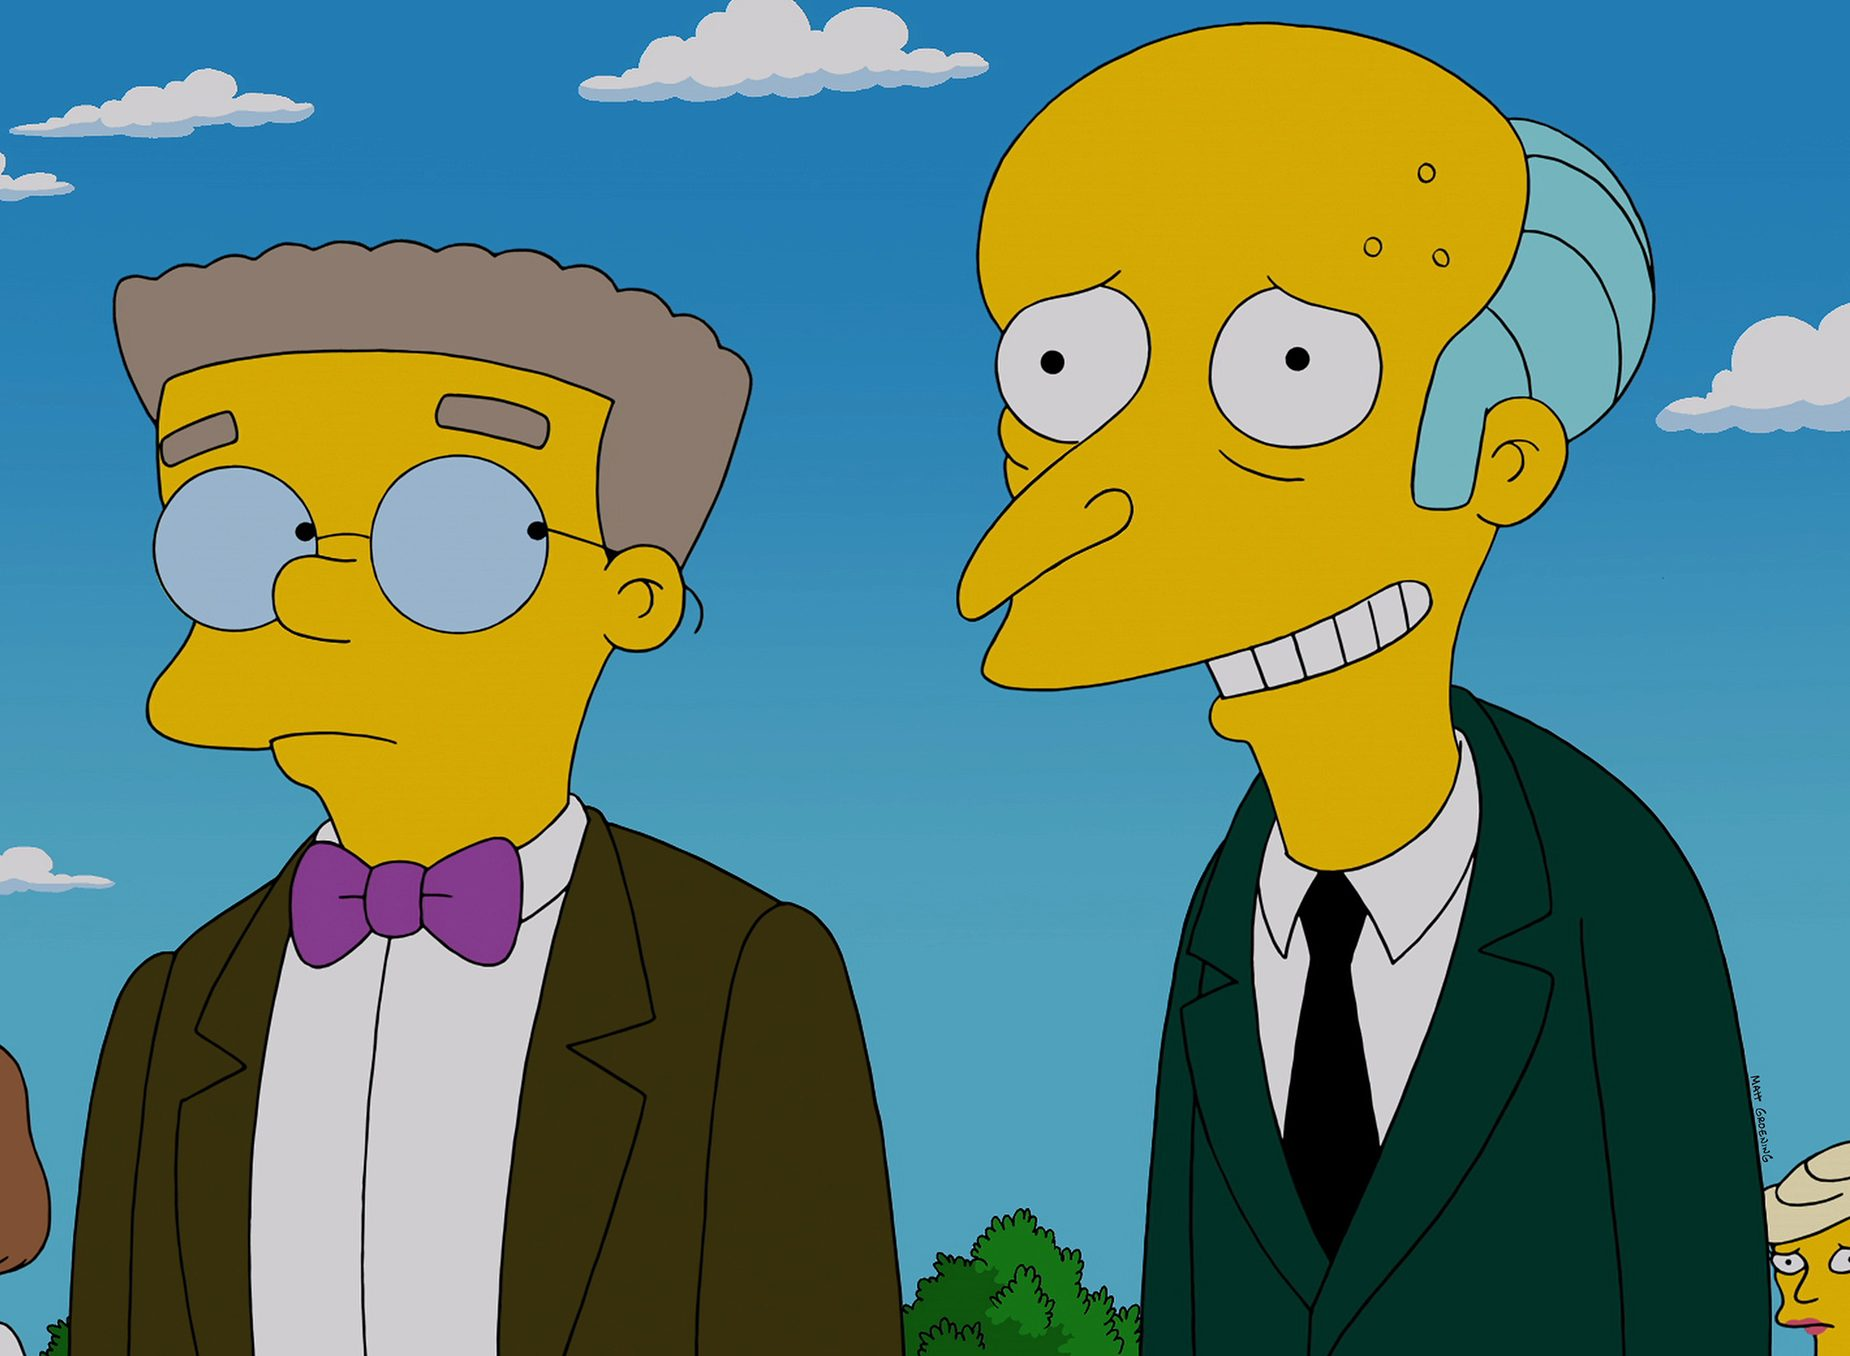 smithers burns today 150928 tease 01 9f523bbcd53e1a0392d9a1cc896fa2ff e1615995194350 30 Things You Didn't Know About The Simpsons